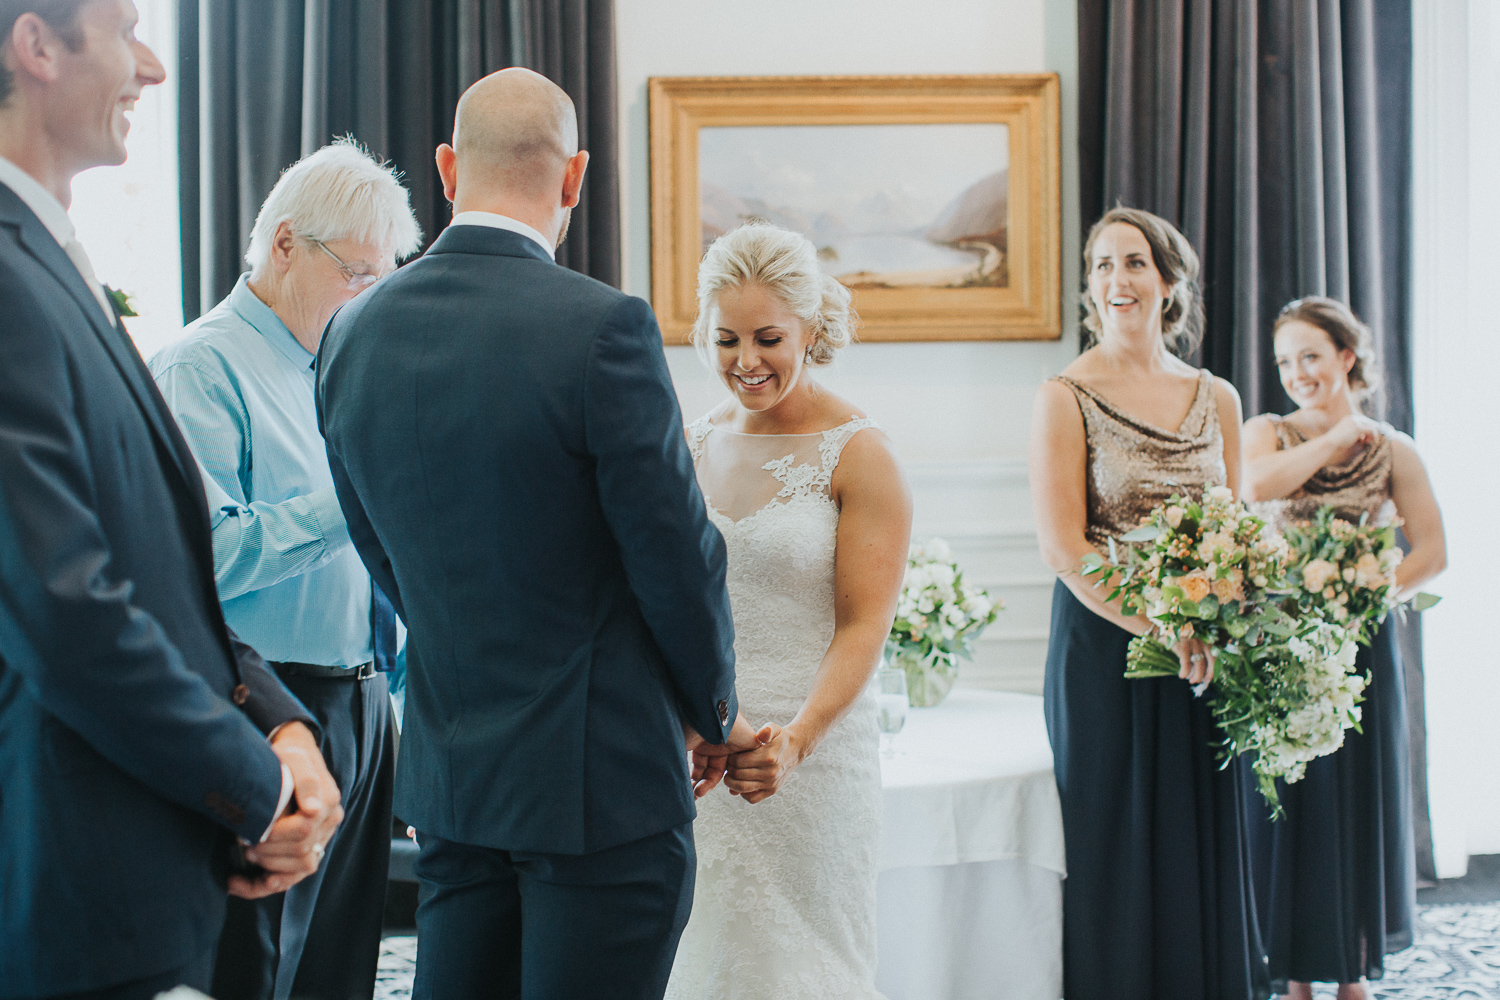 lauren dan northern club weddding-88.jpg